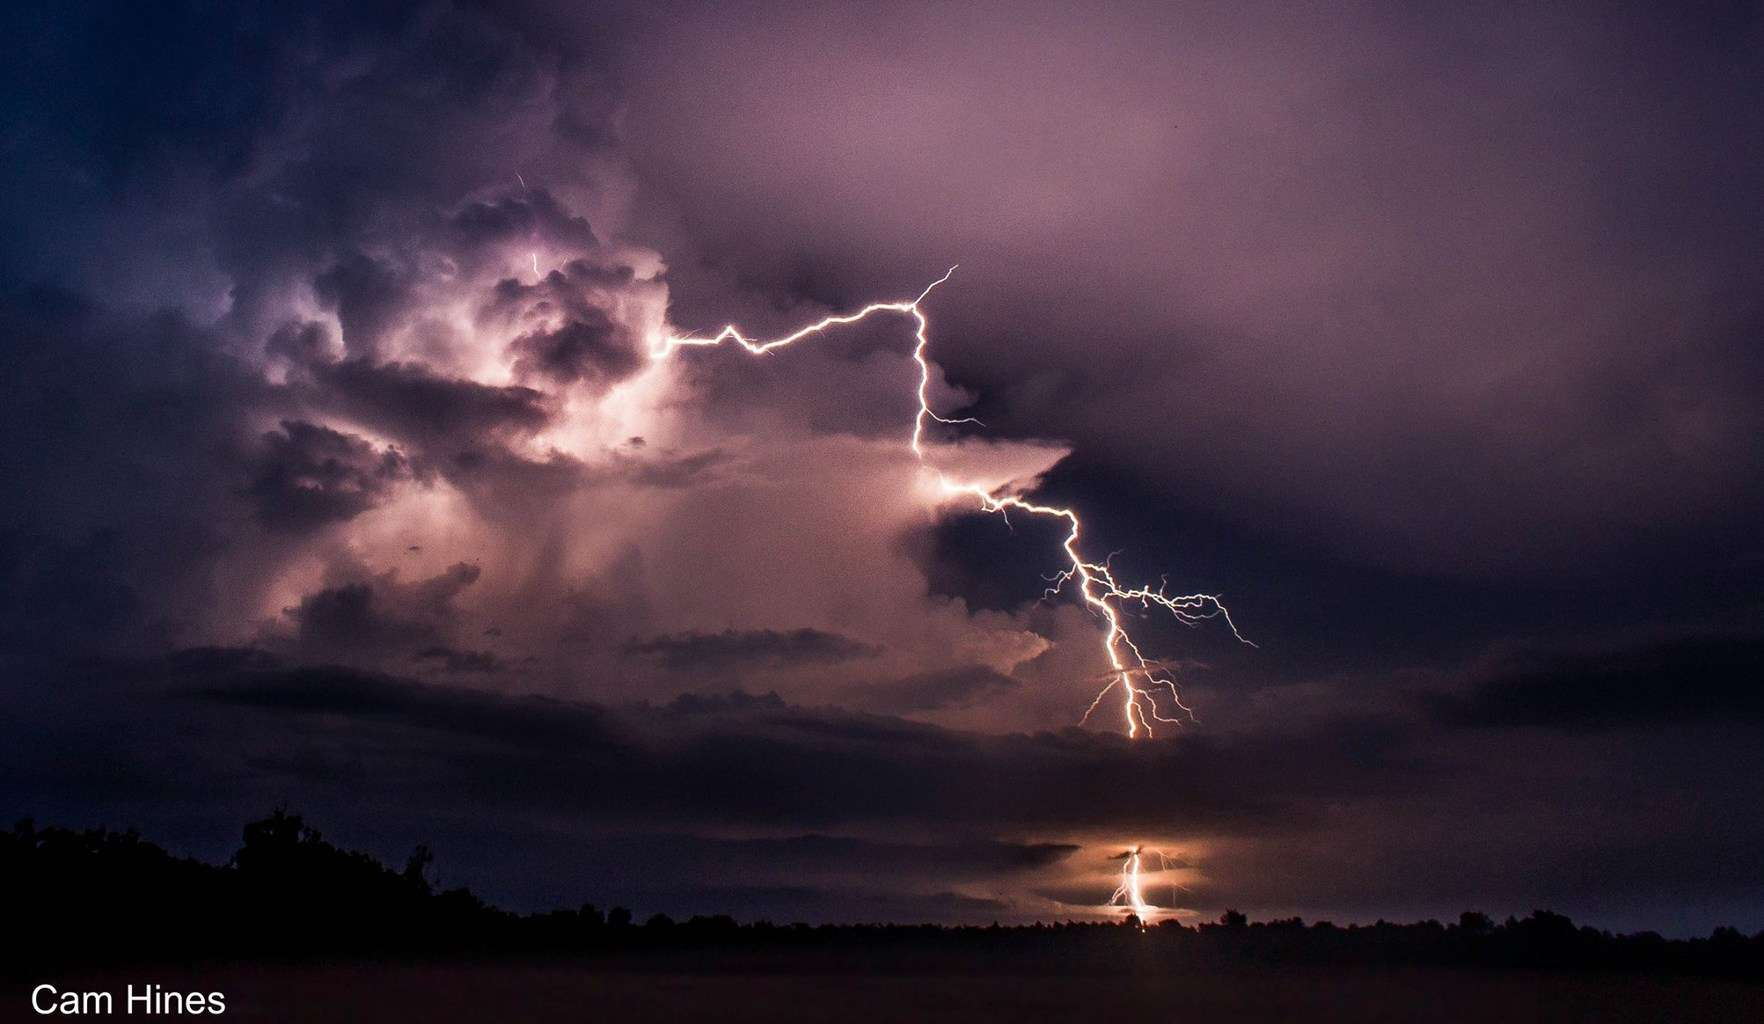 Some clear air lightning from New Years Eve in Weipa, Cape York, Australia. Best New Years Fireworks display that anyone could ask for!